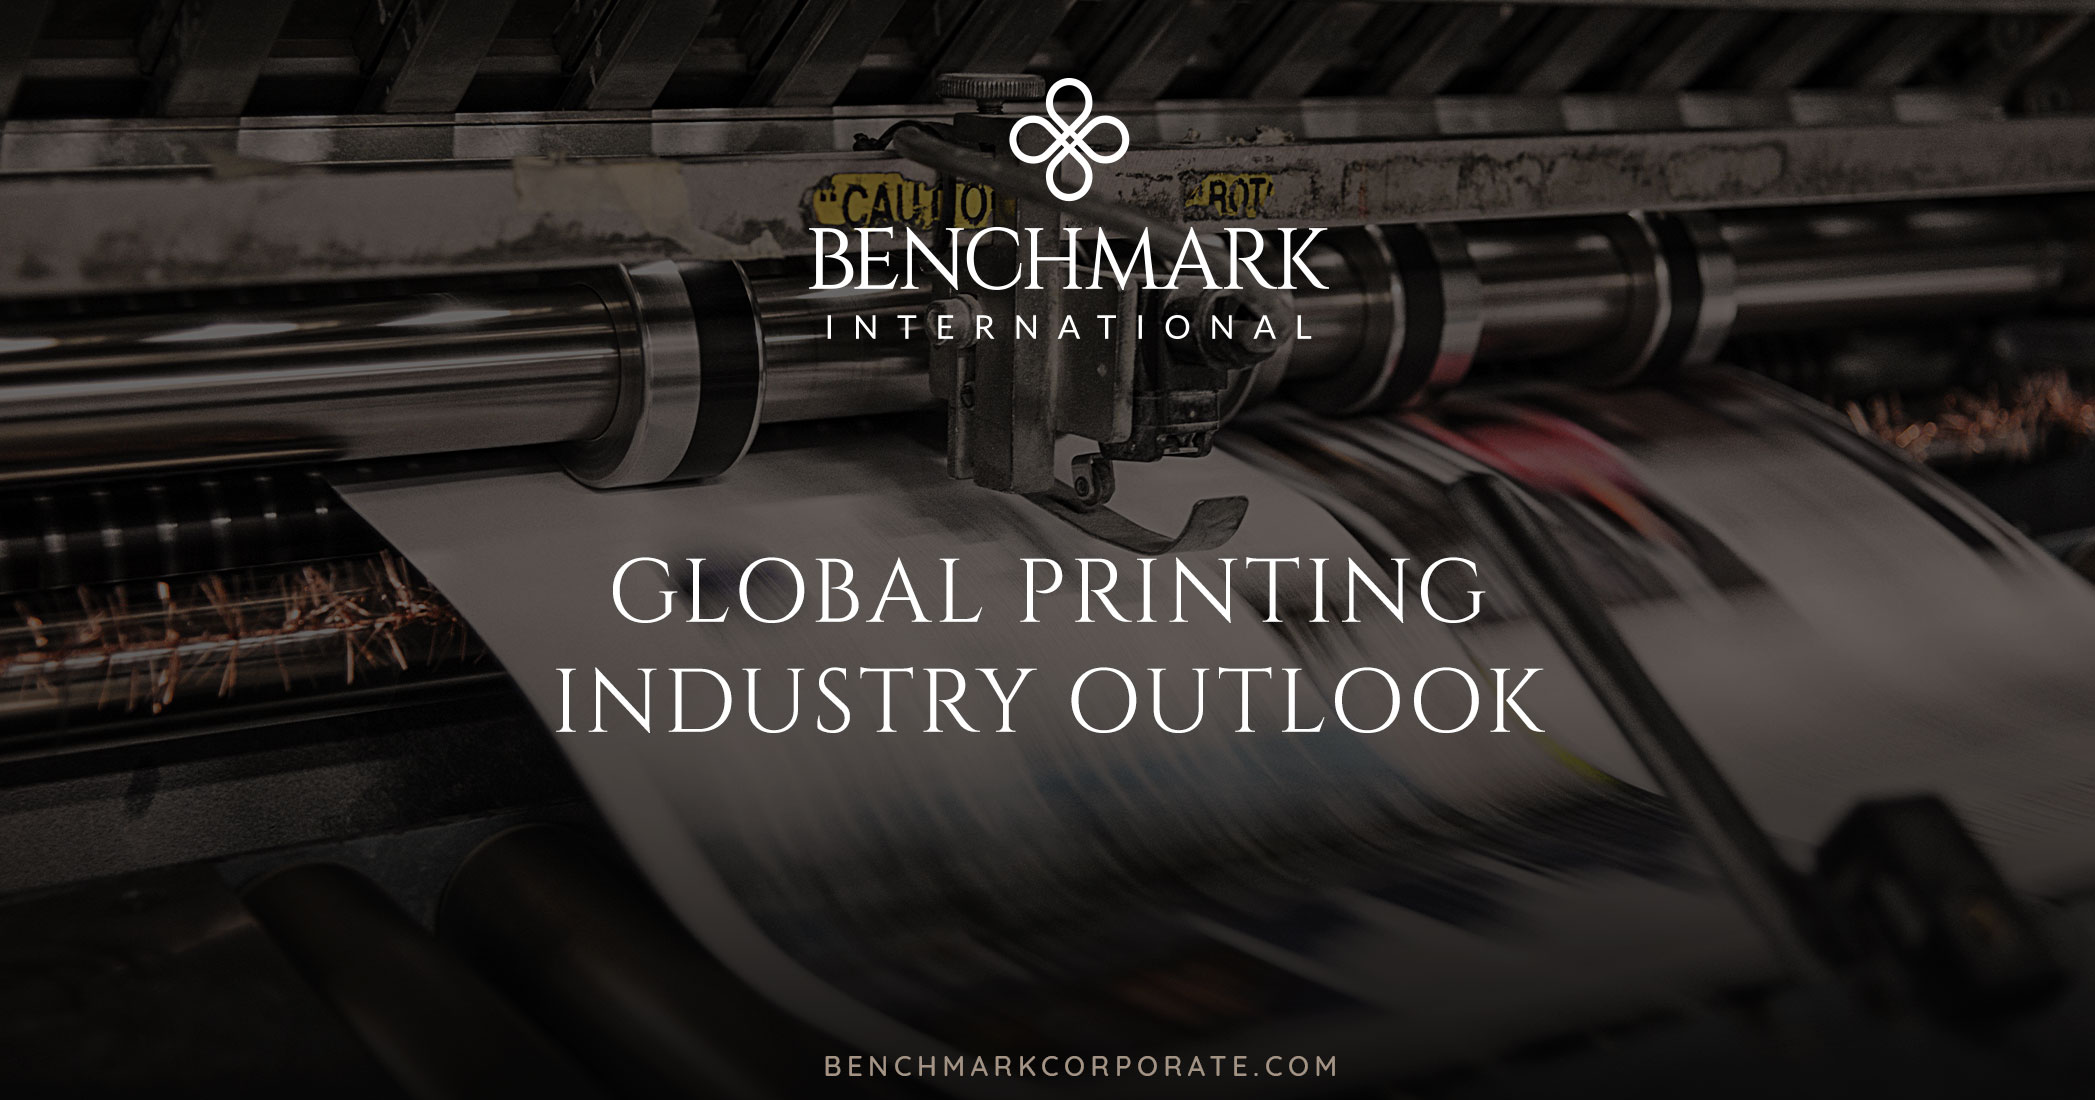 Global Printing Industry Outlook